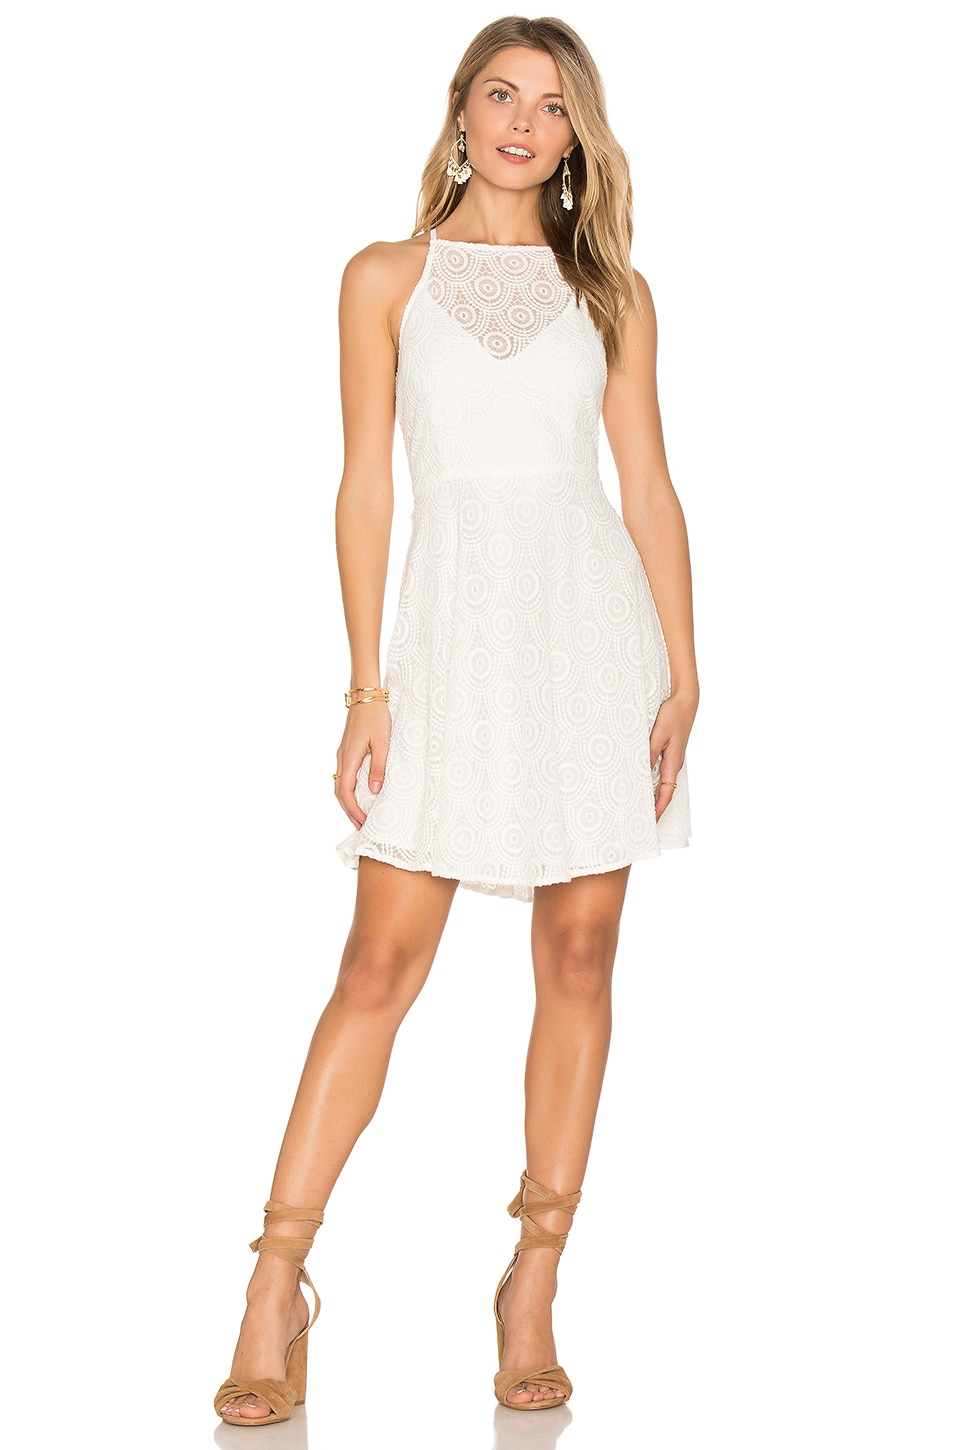 BB Dakota RSVP by BB Dakota Alena Dress in Cream